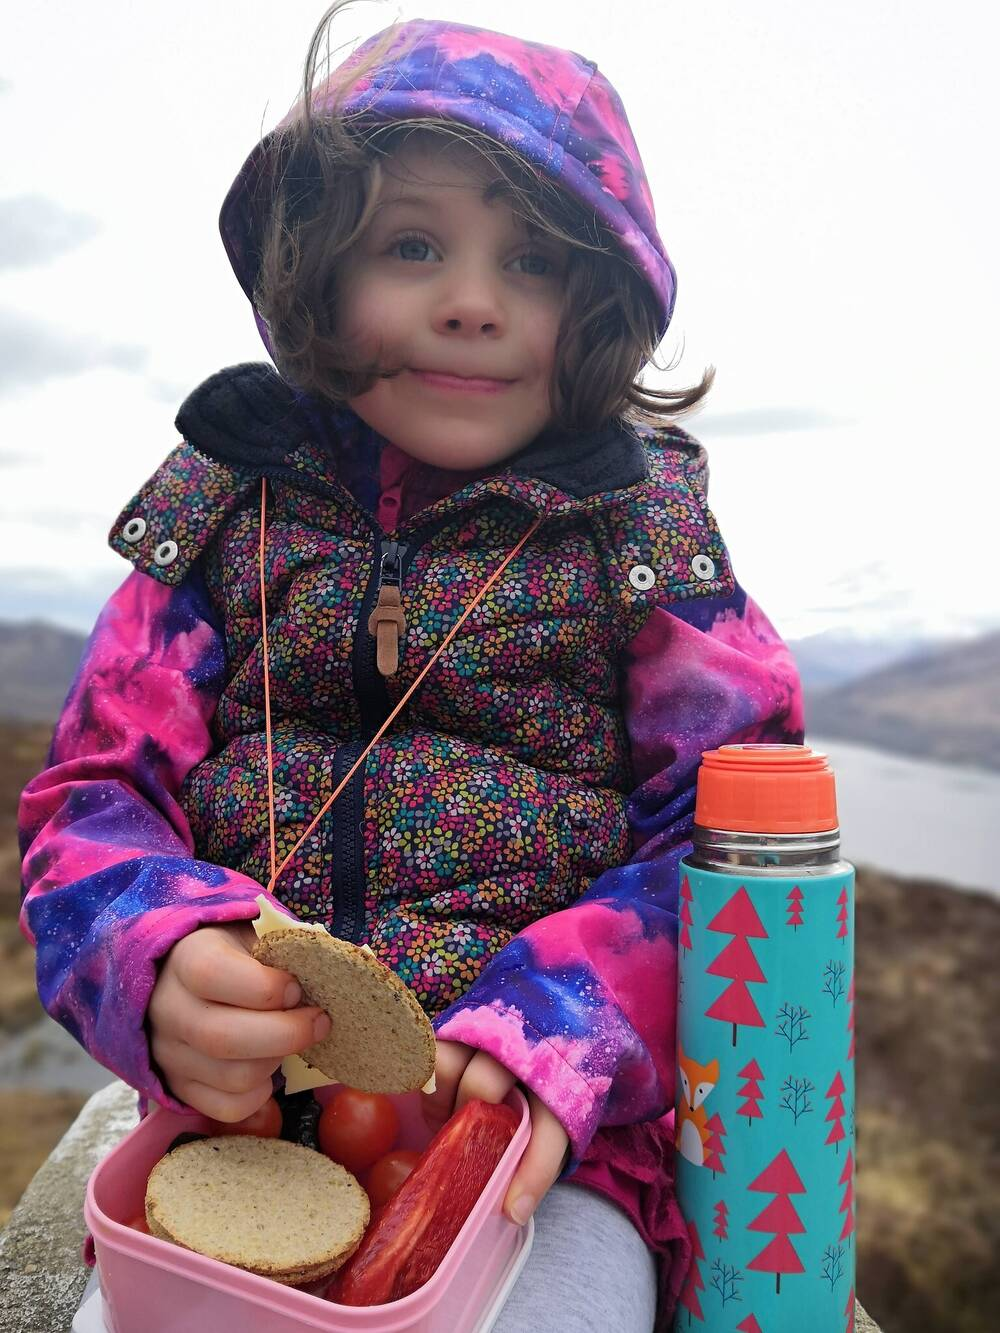 Small girl eating from a lunch box, with a loch behind her in the distance.